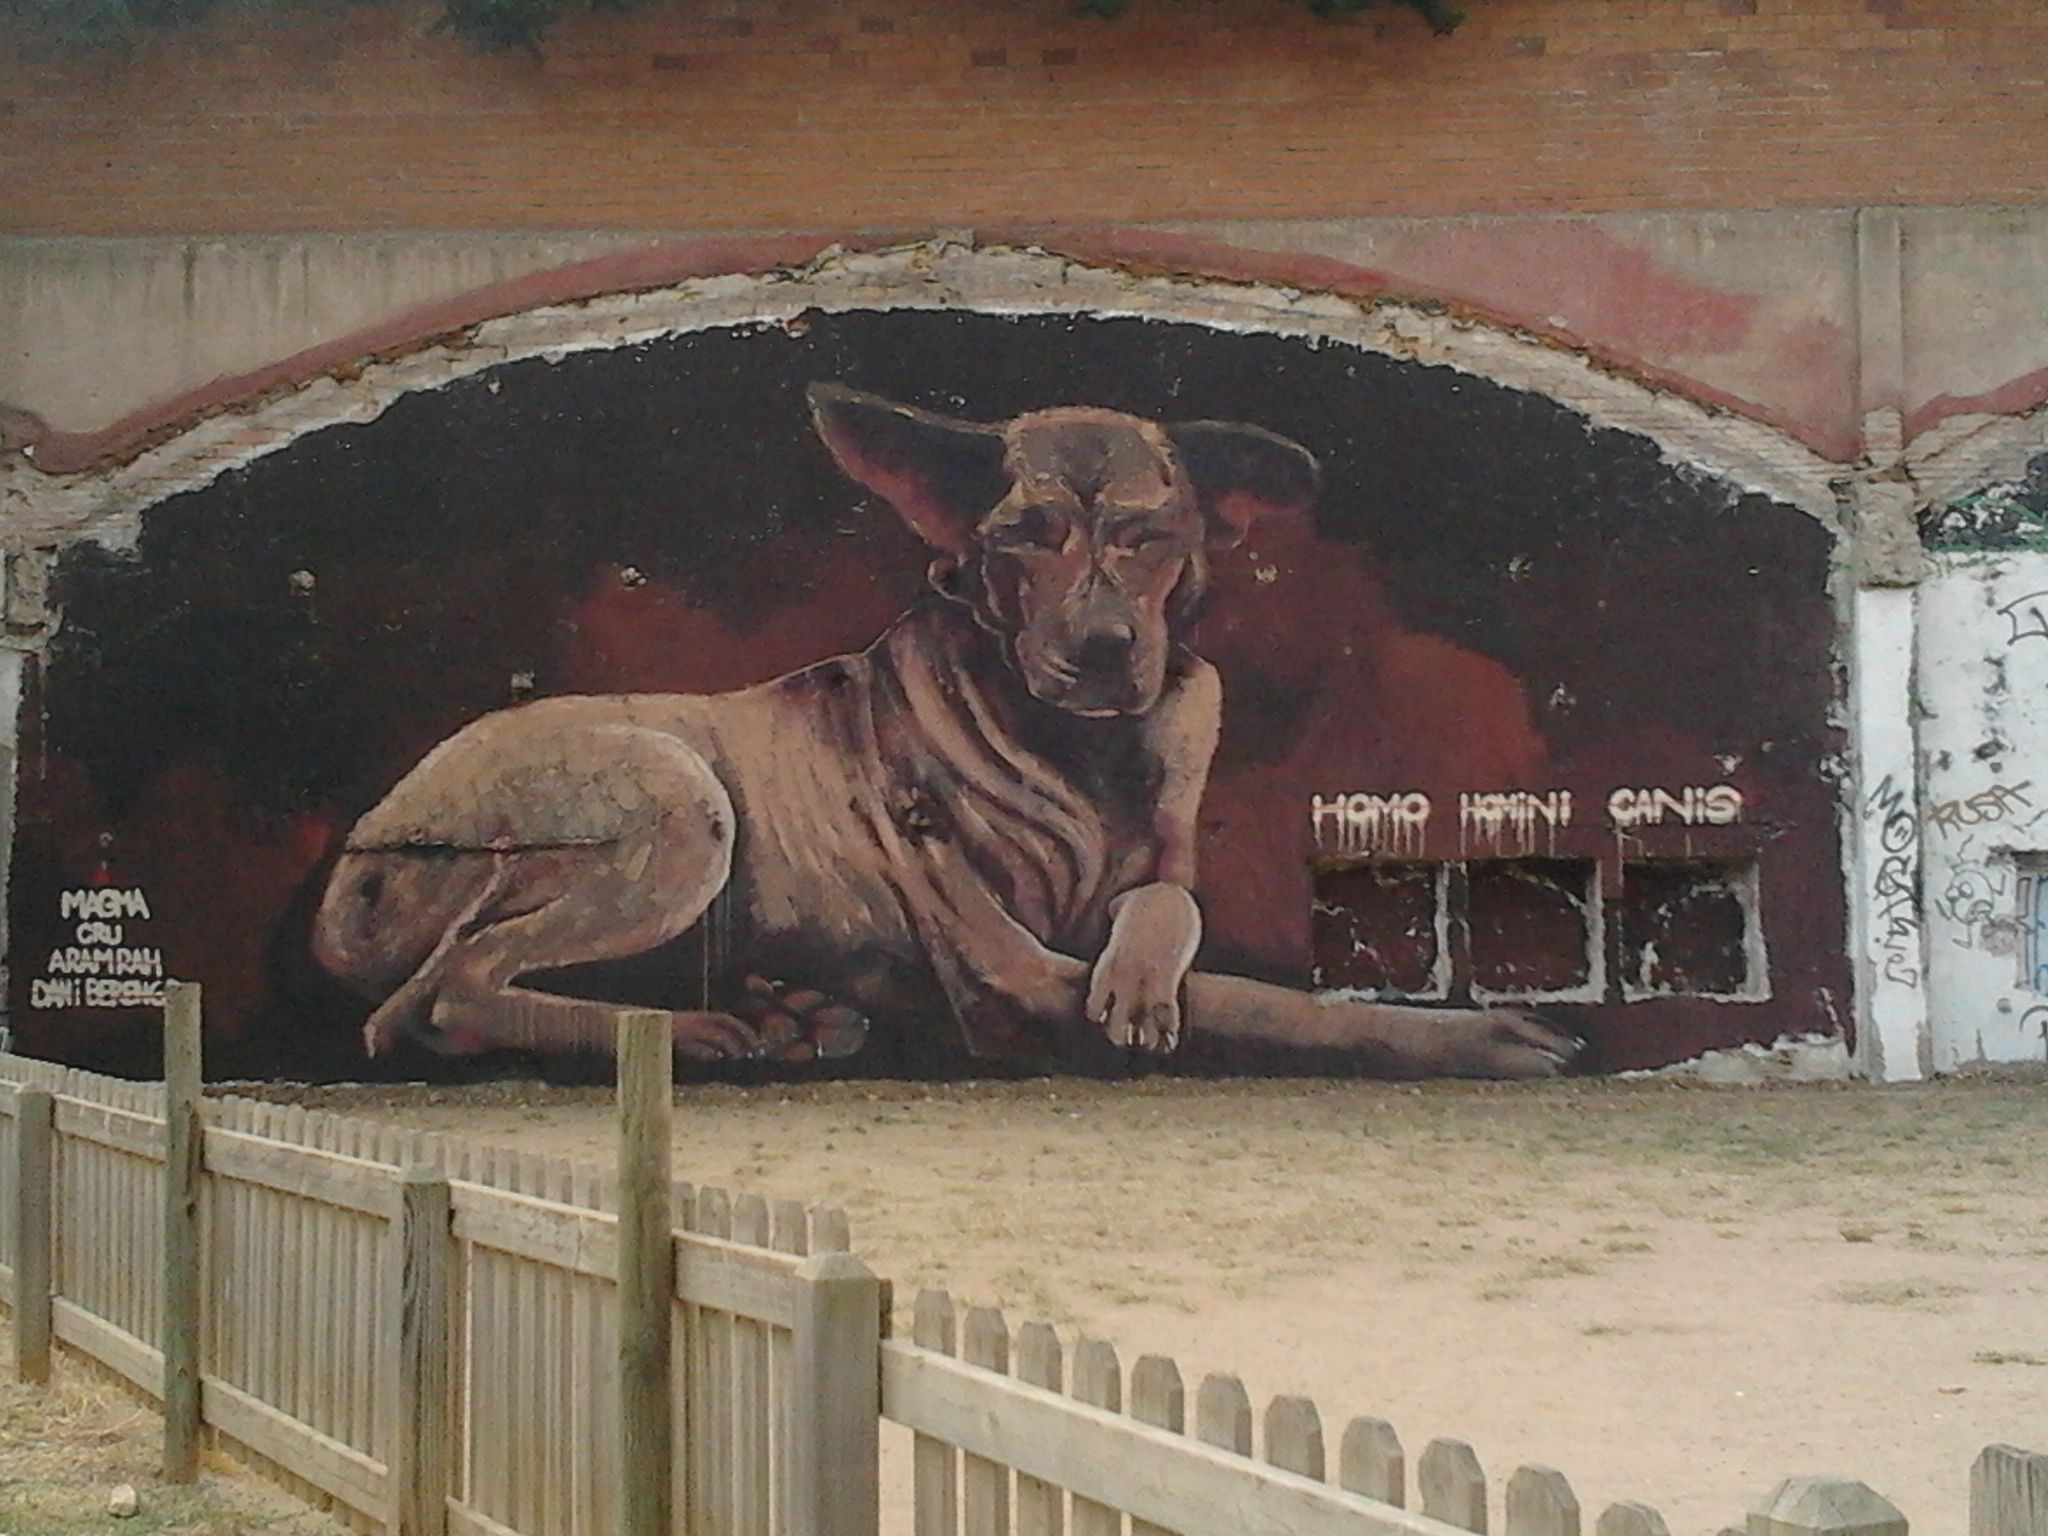 giant dog painting in a dog park...seems sensible..